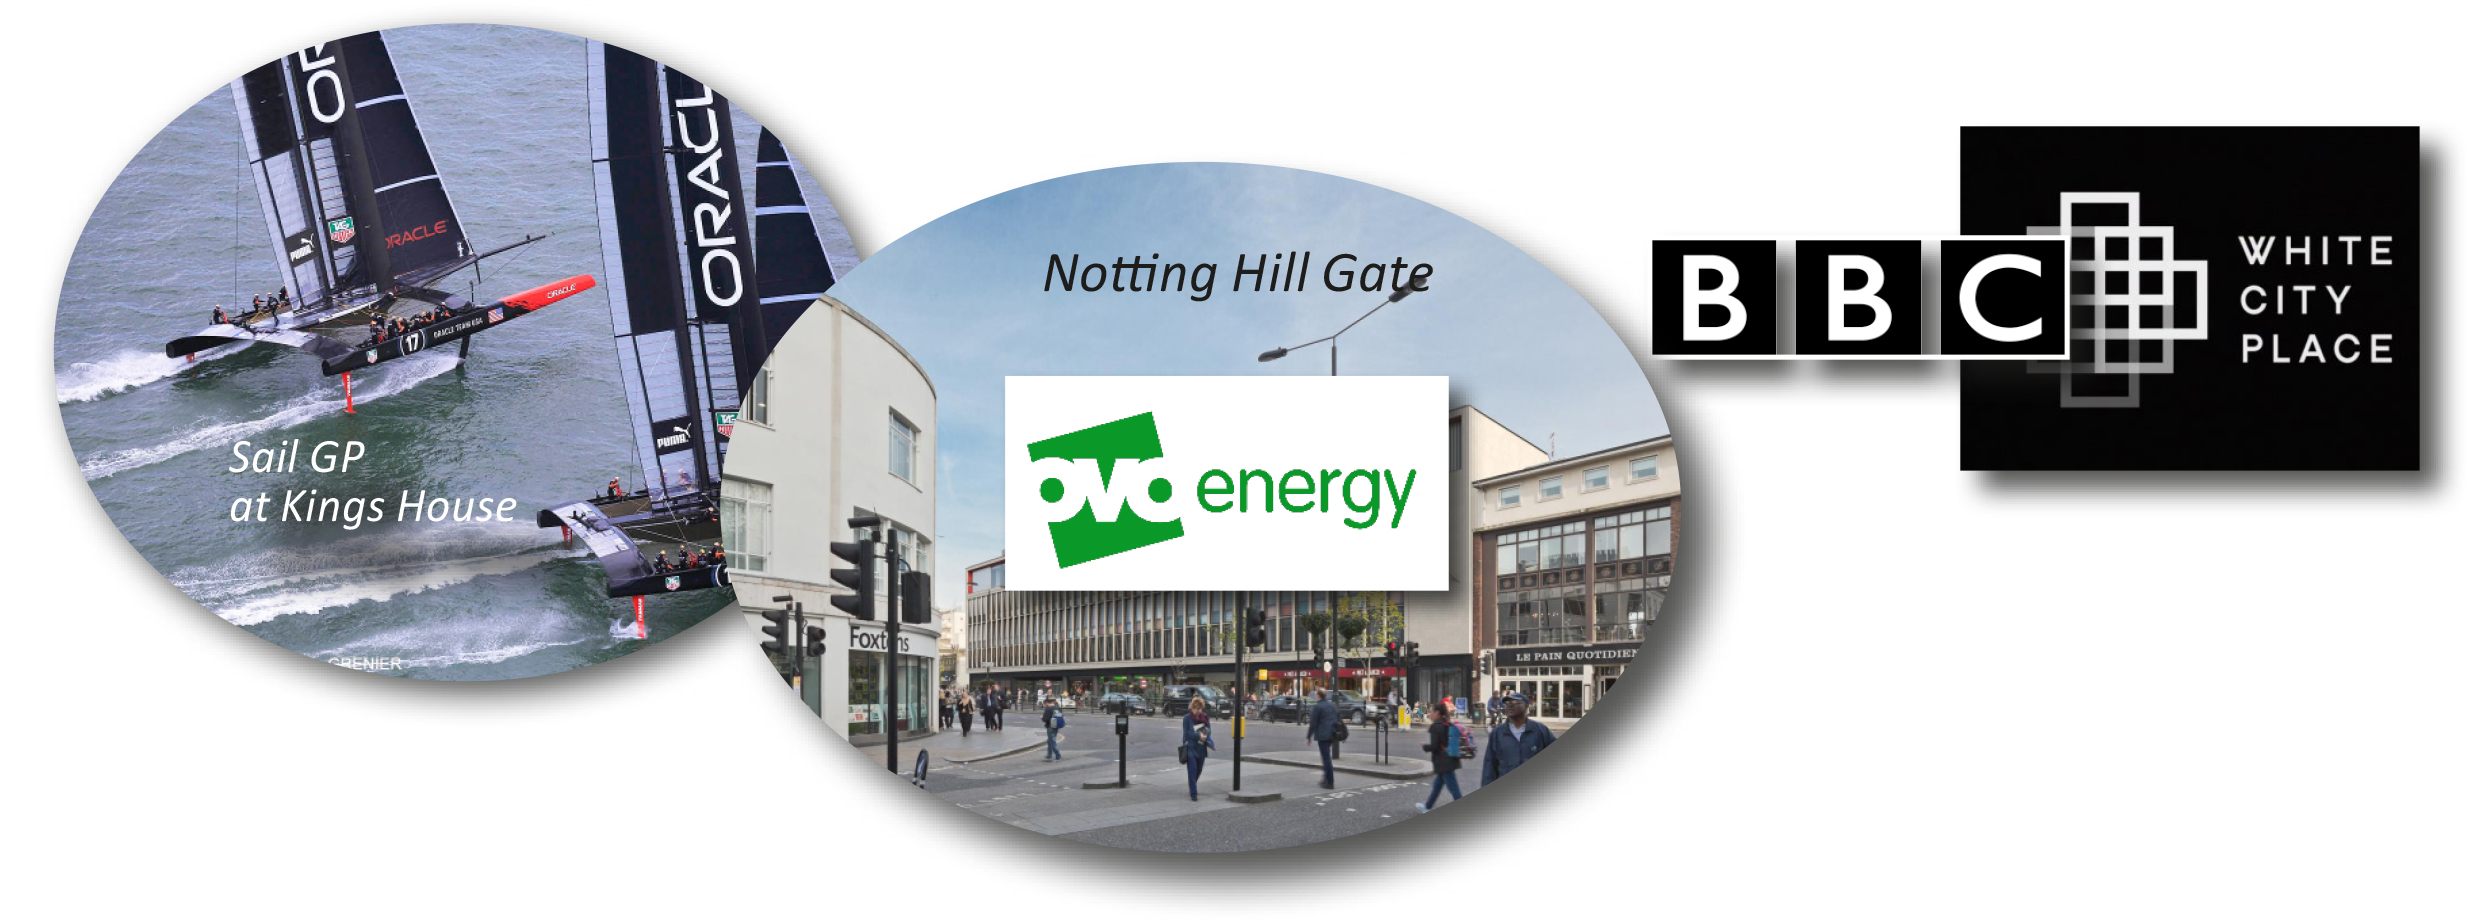 West-London-Office-Annual-Review-2018-Sail-GP-Notting-Hill-Gate-Ovo-Energy-BBC-White-City-Place